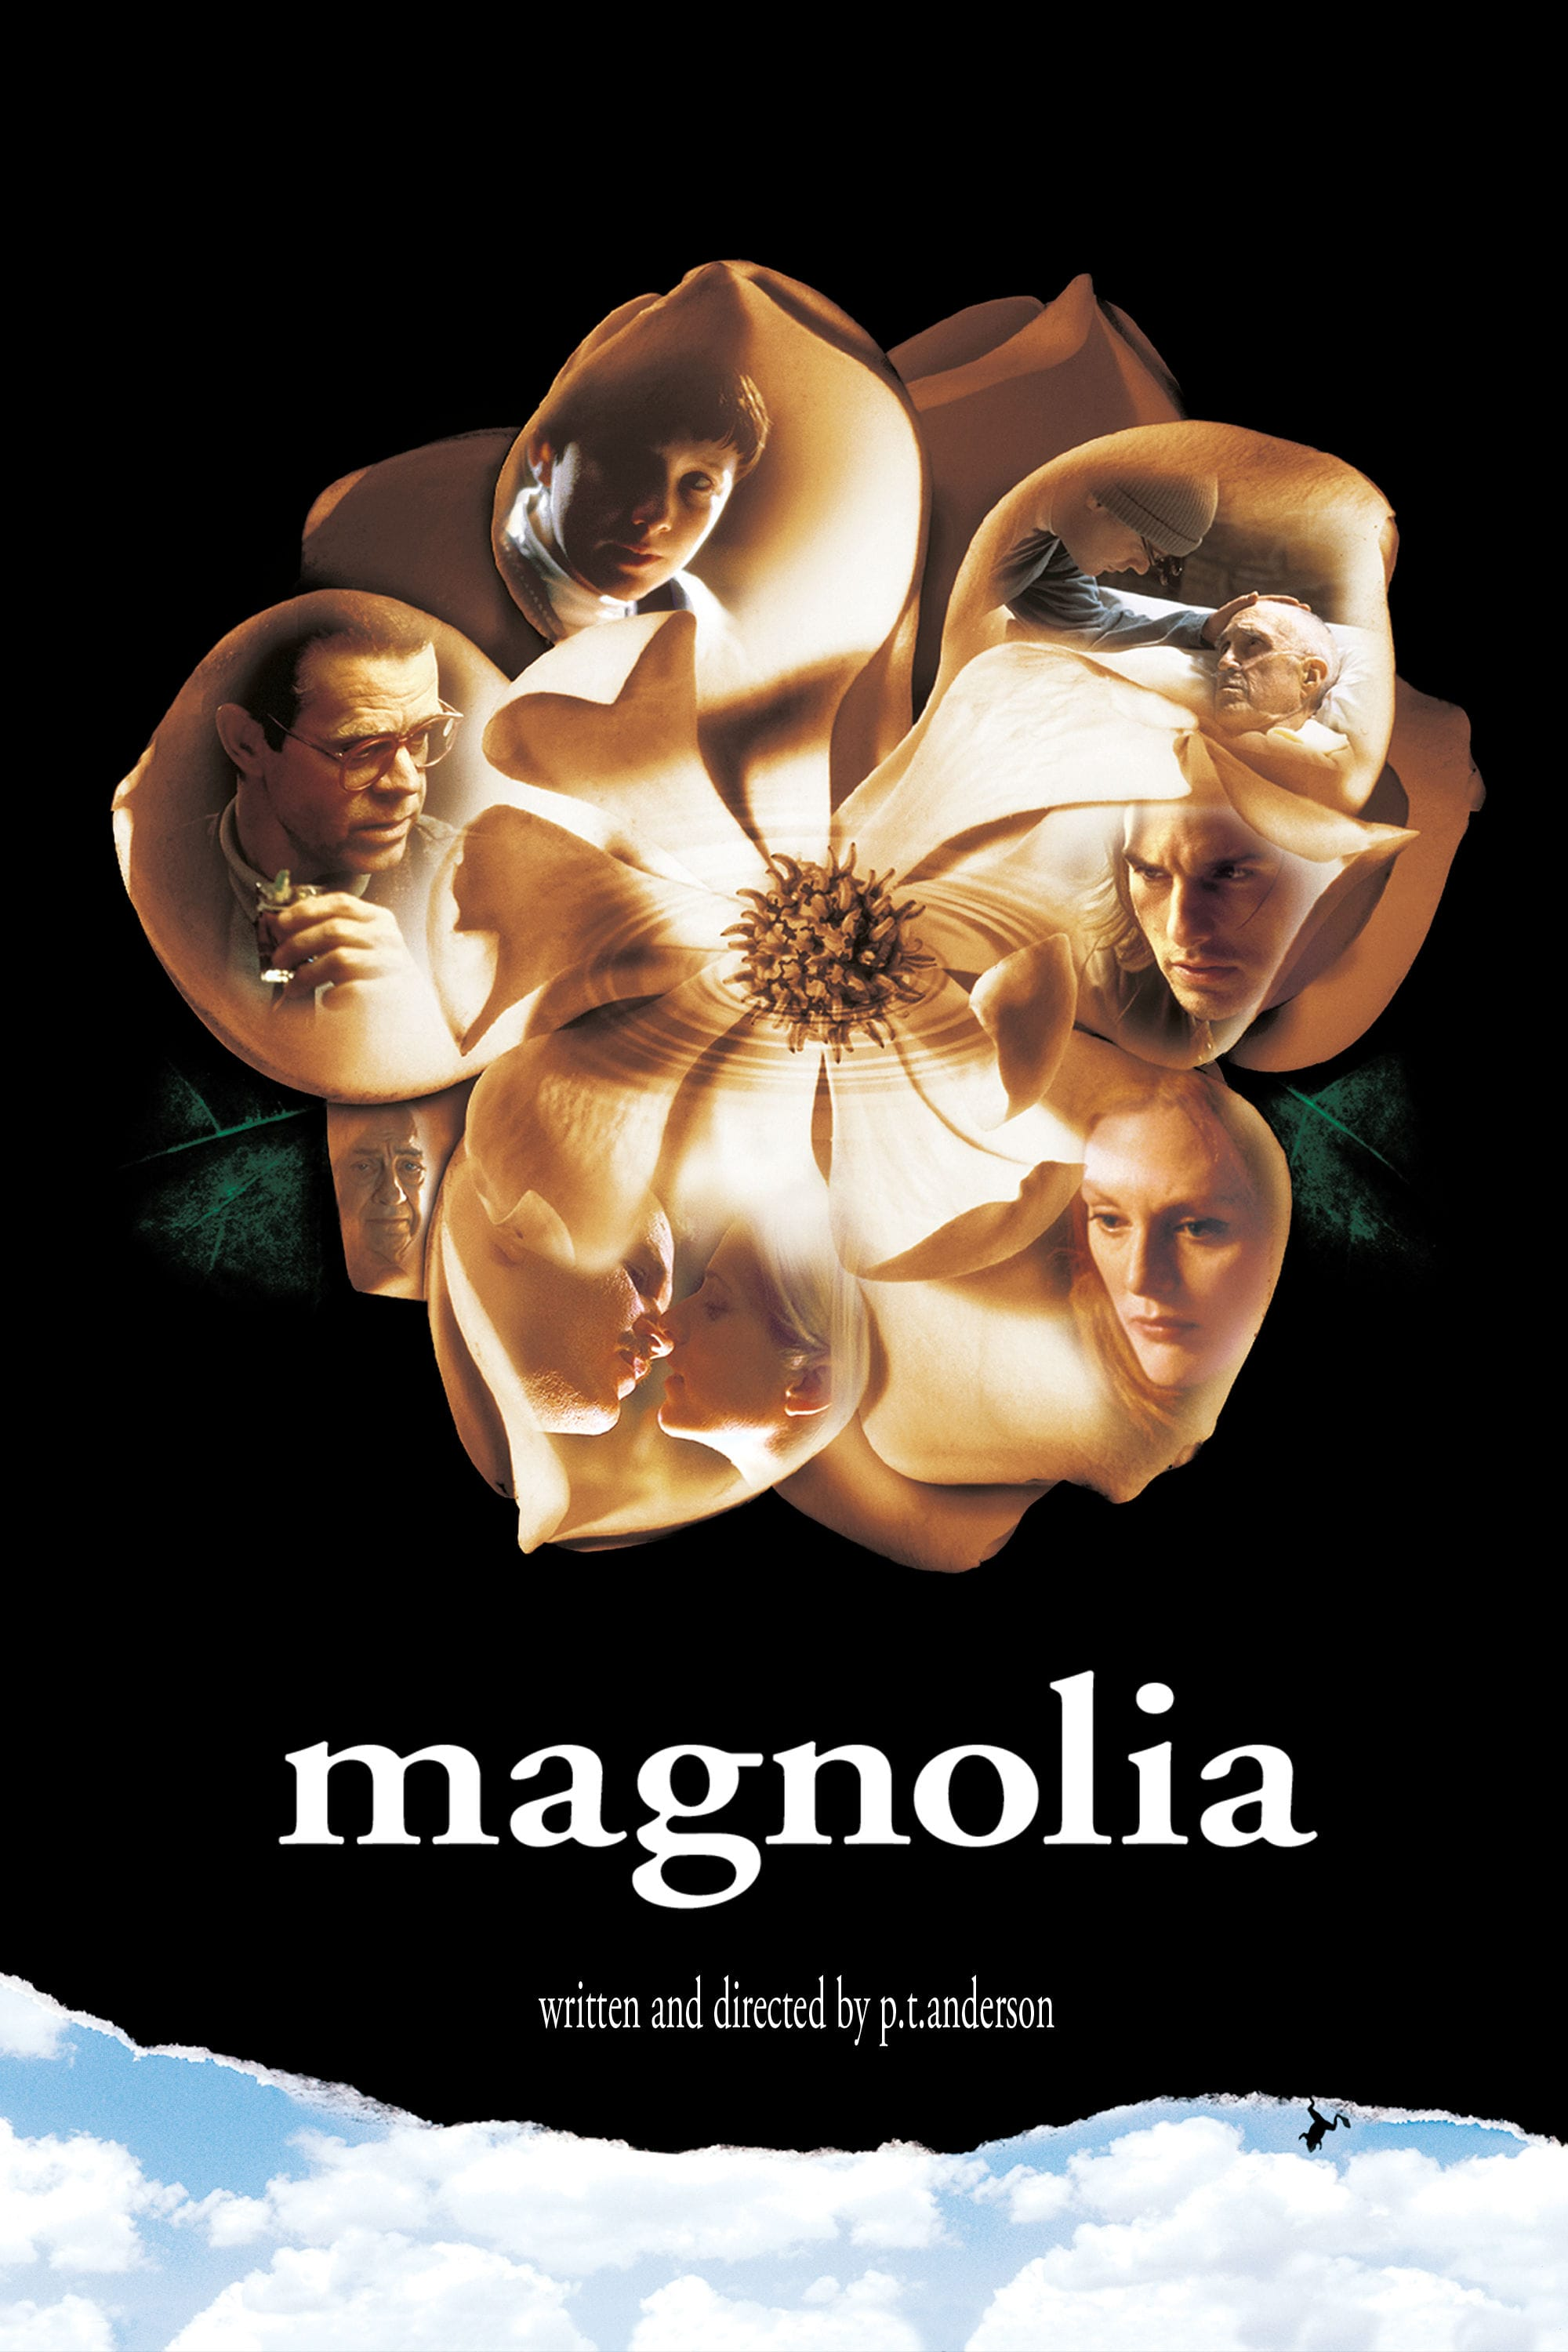 magnolia-filming-locations-poster